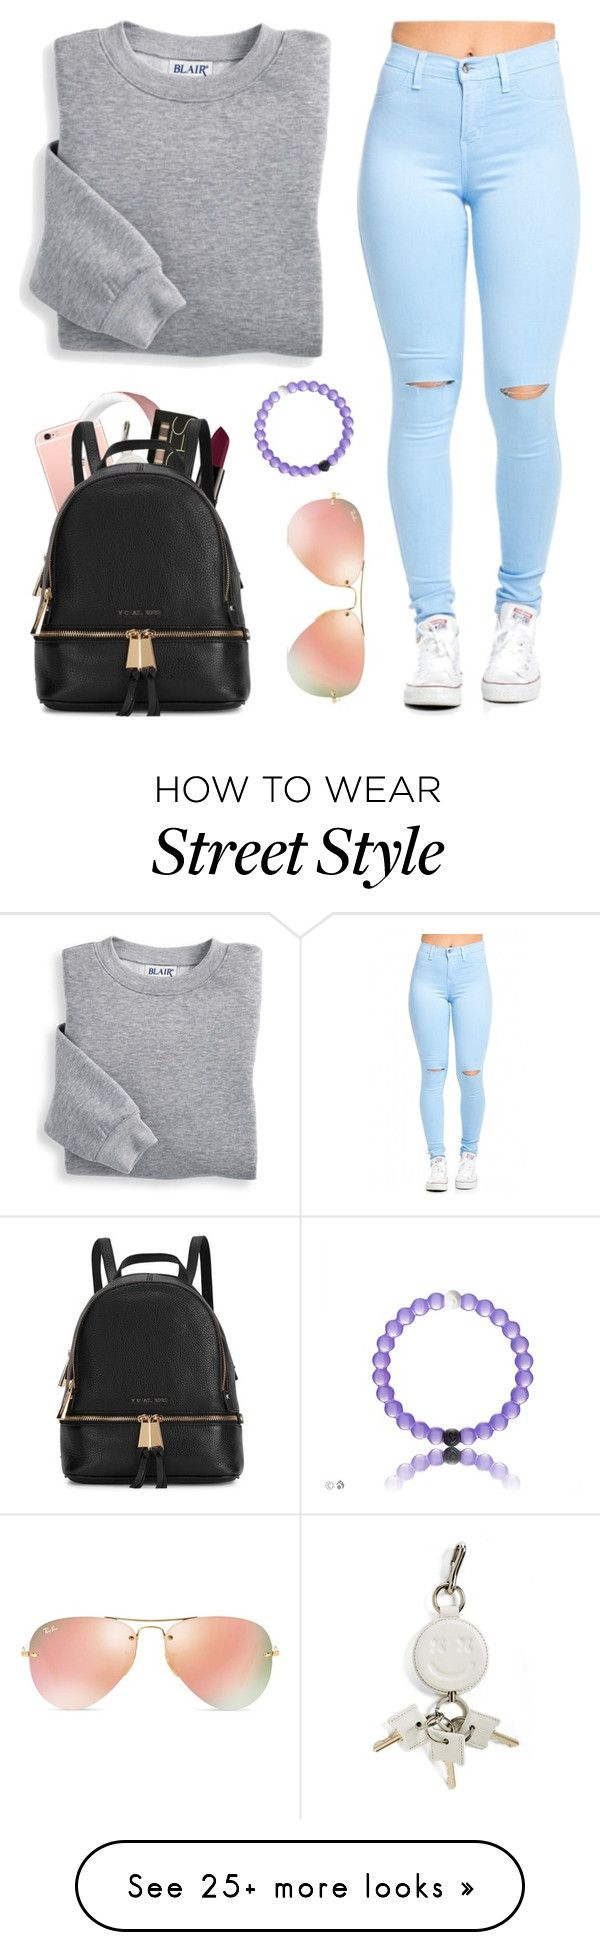 """My style ✌️"" by ducky-momo-fangirl on Polyvore featuring moda, Smashbox, Blair…"